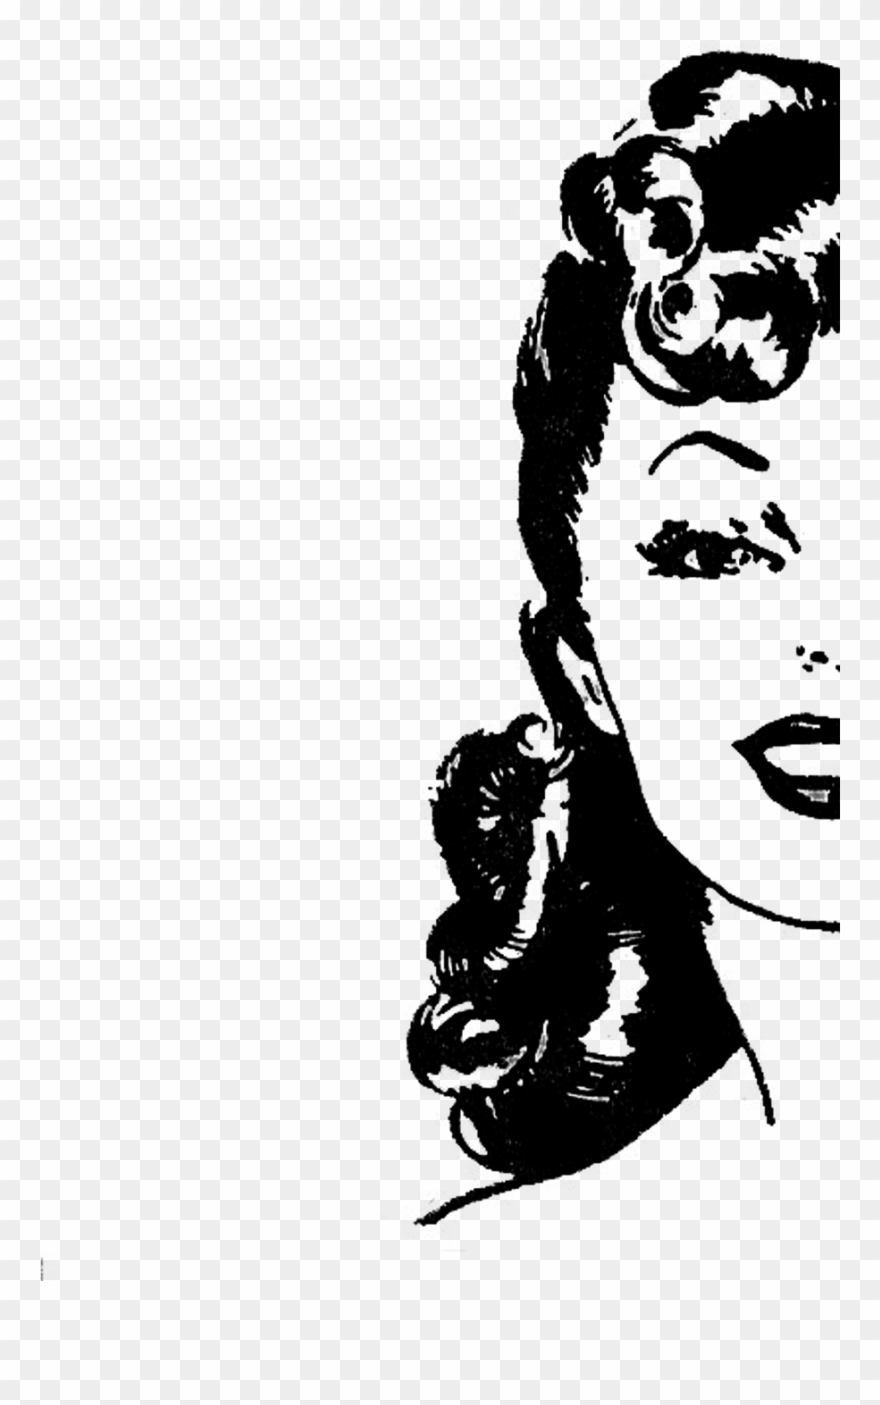 Retro lady clipart picture black and white library Merchandising Support - Retro Lady Clip Art Free - Png ... picture black and white library